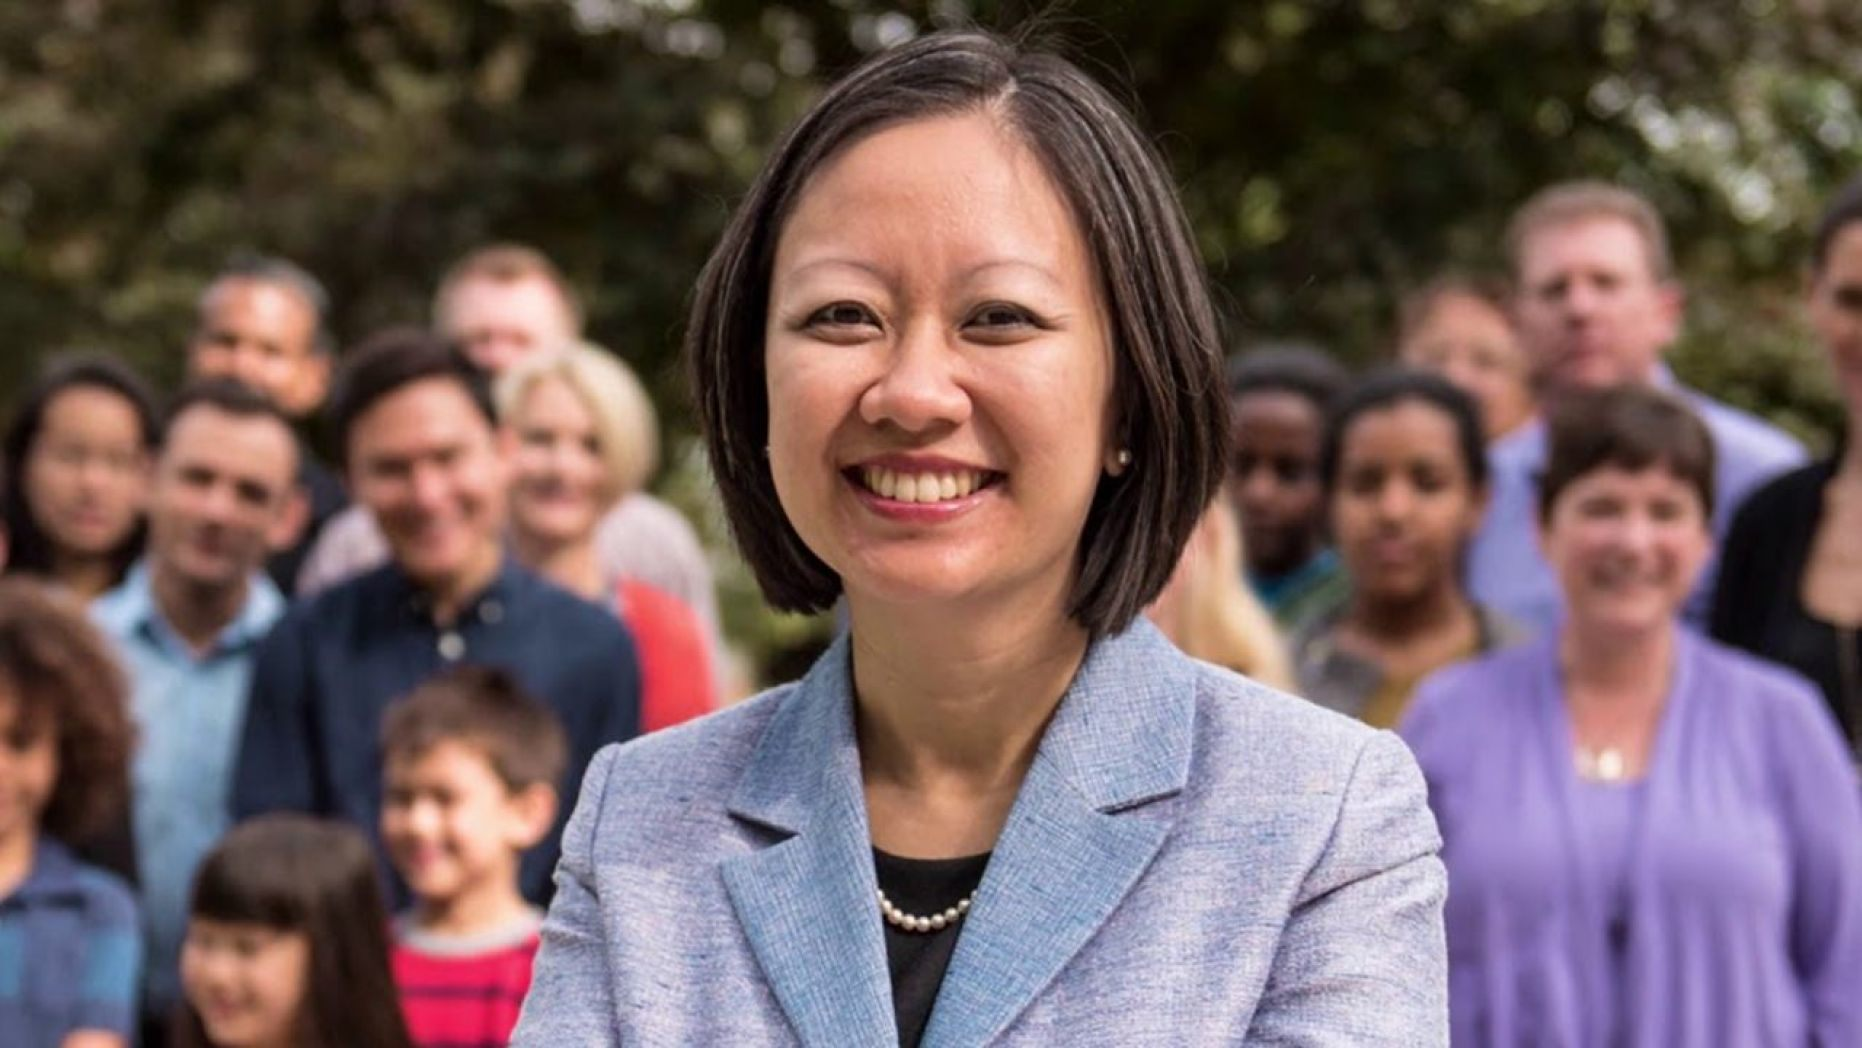 Virginia Democrat Del. Kathy Tran